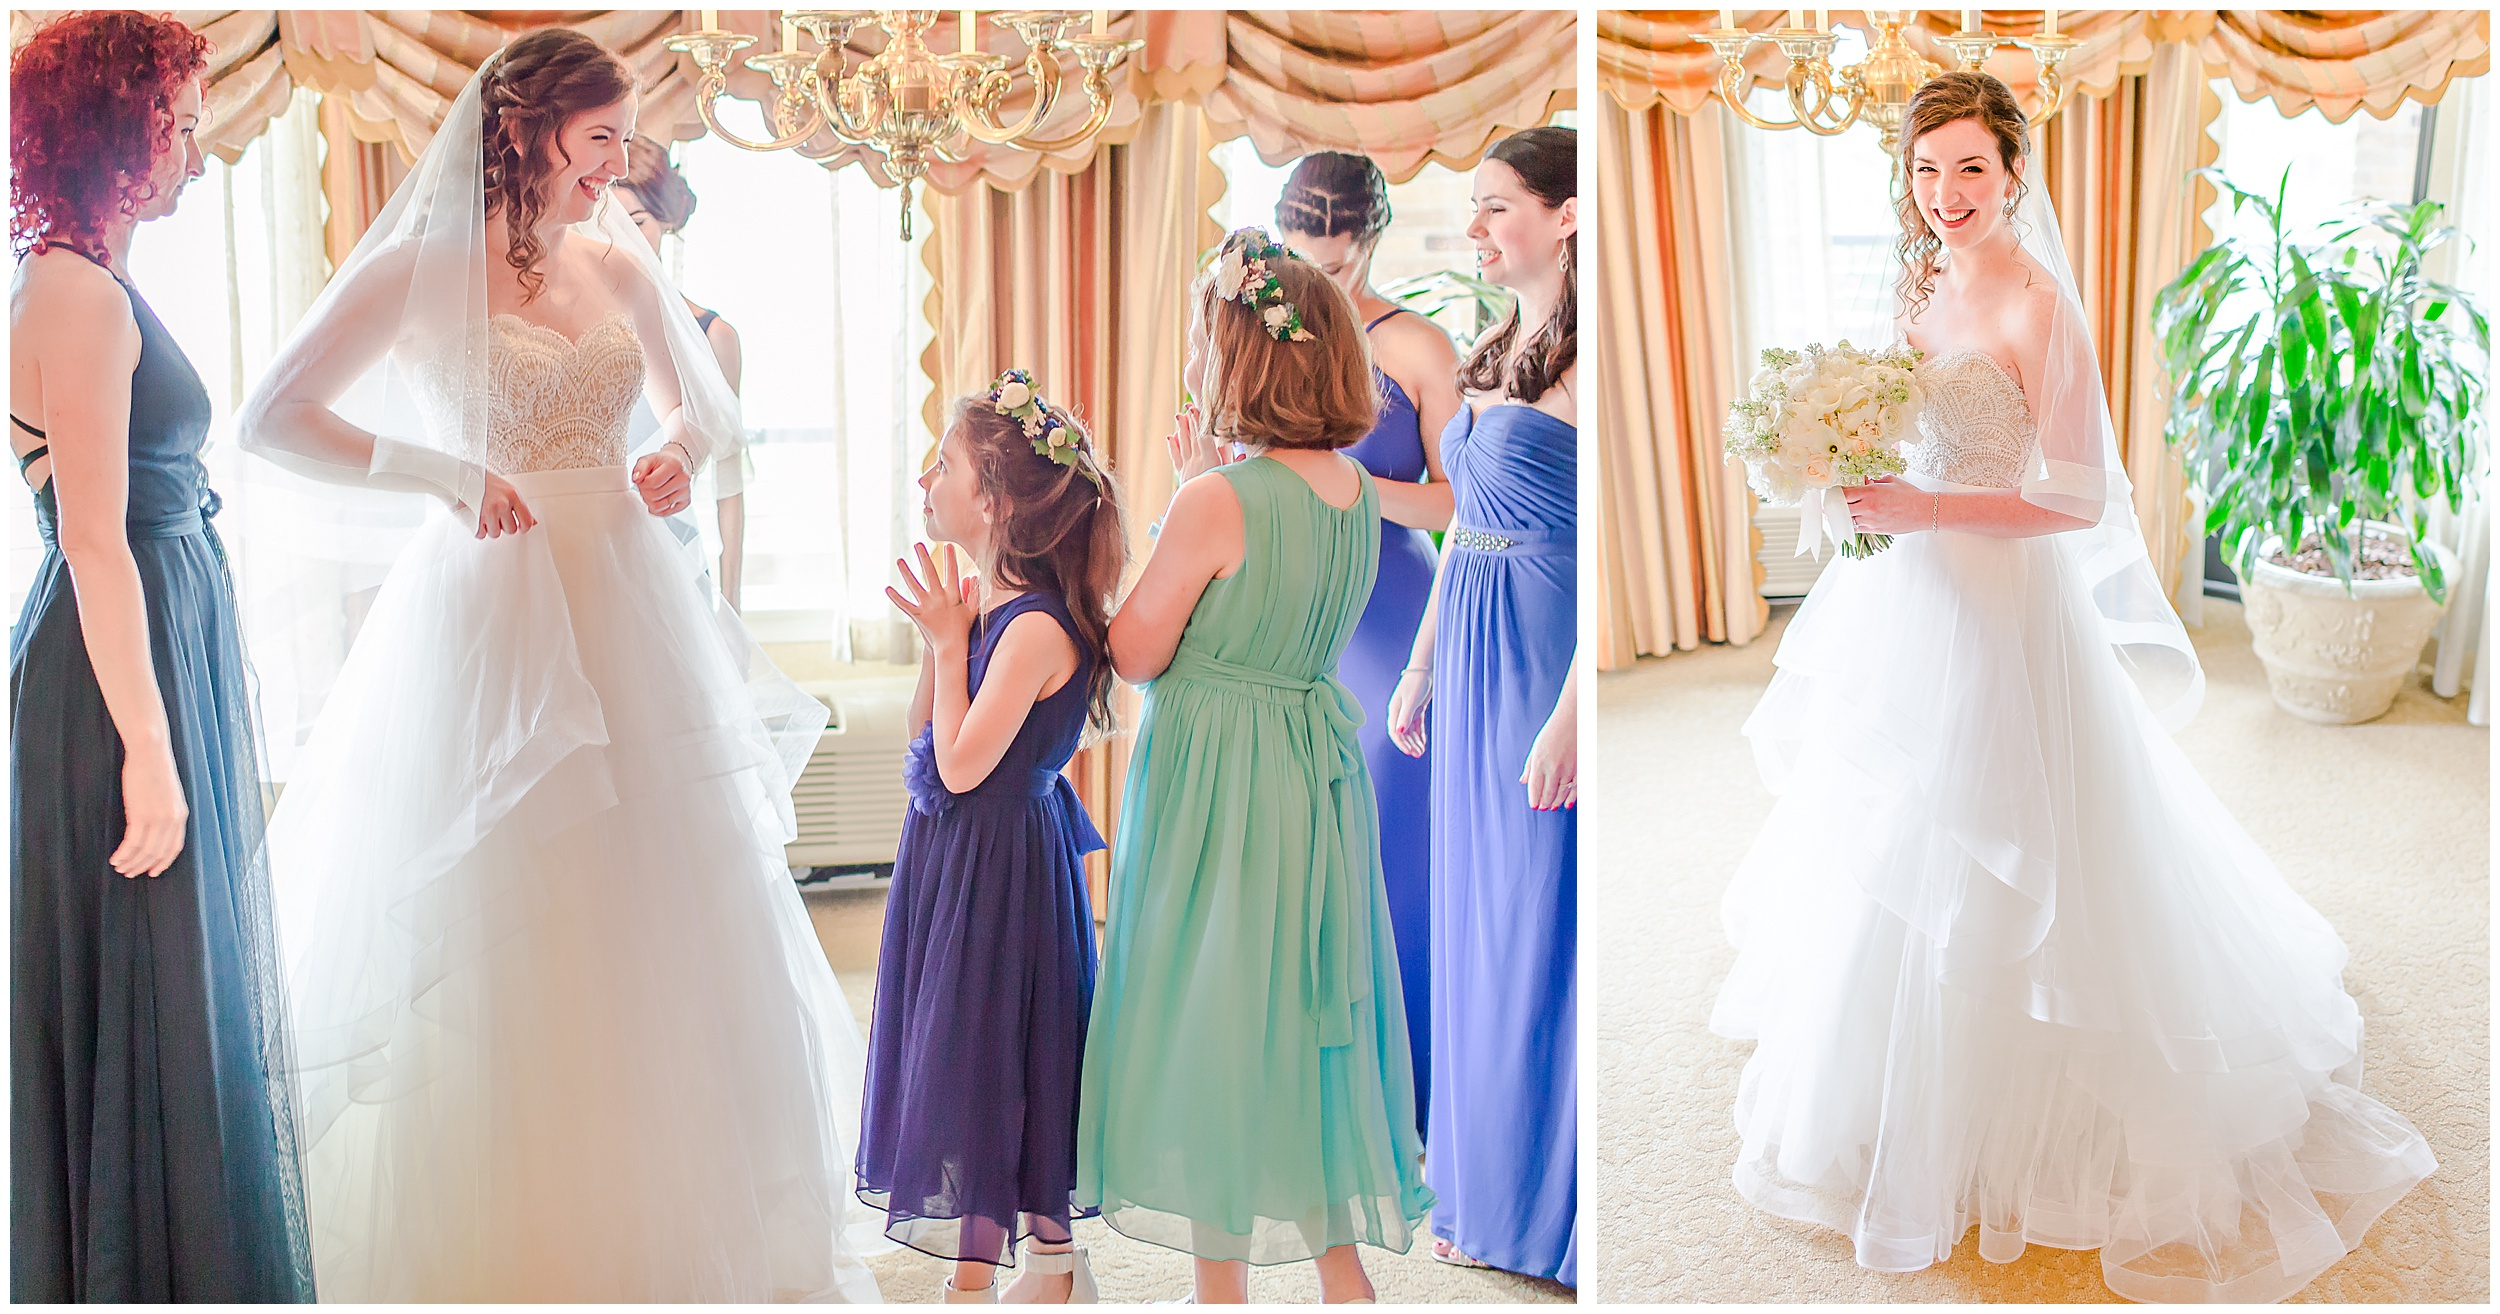 bride-puts-on-dress-bridesmaids